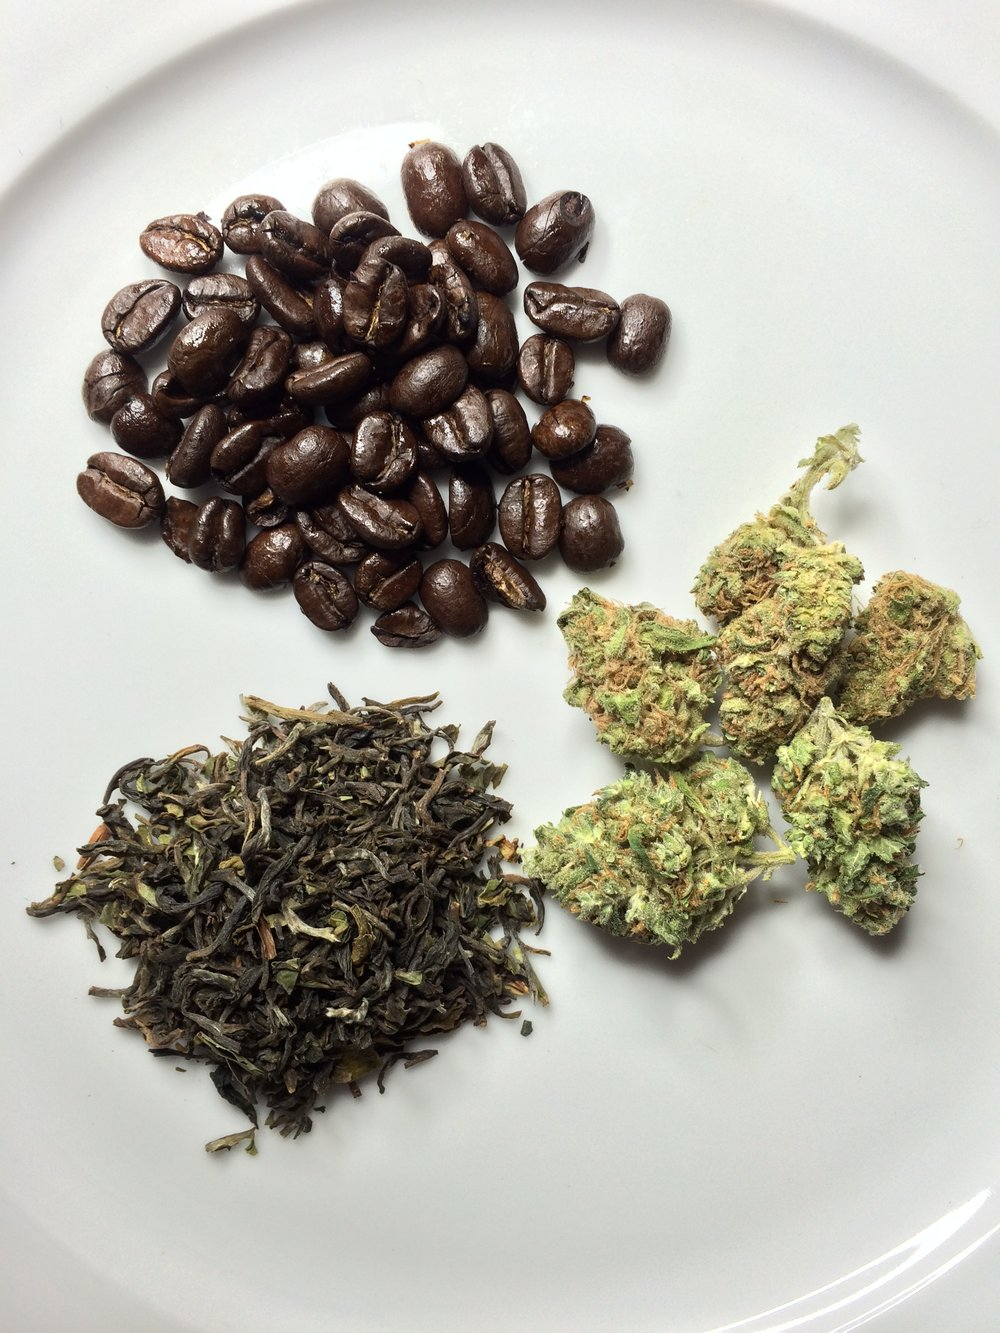 Tea Beans and bud on plate.JPG